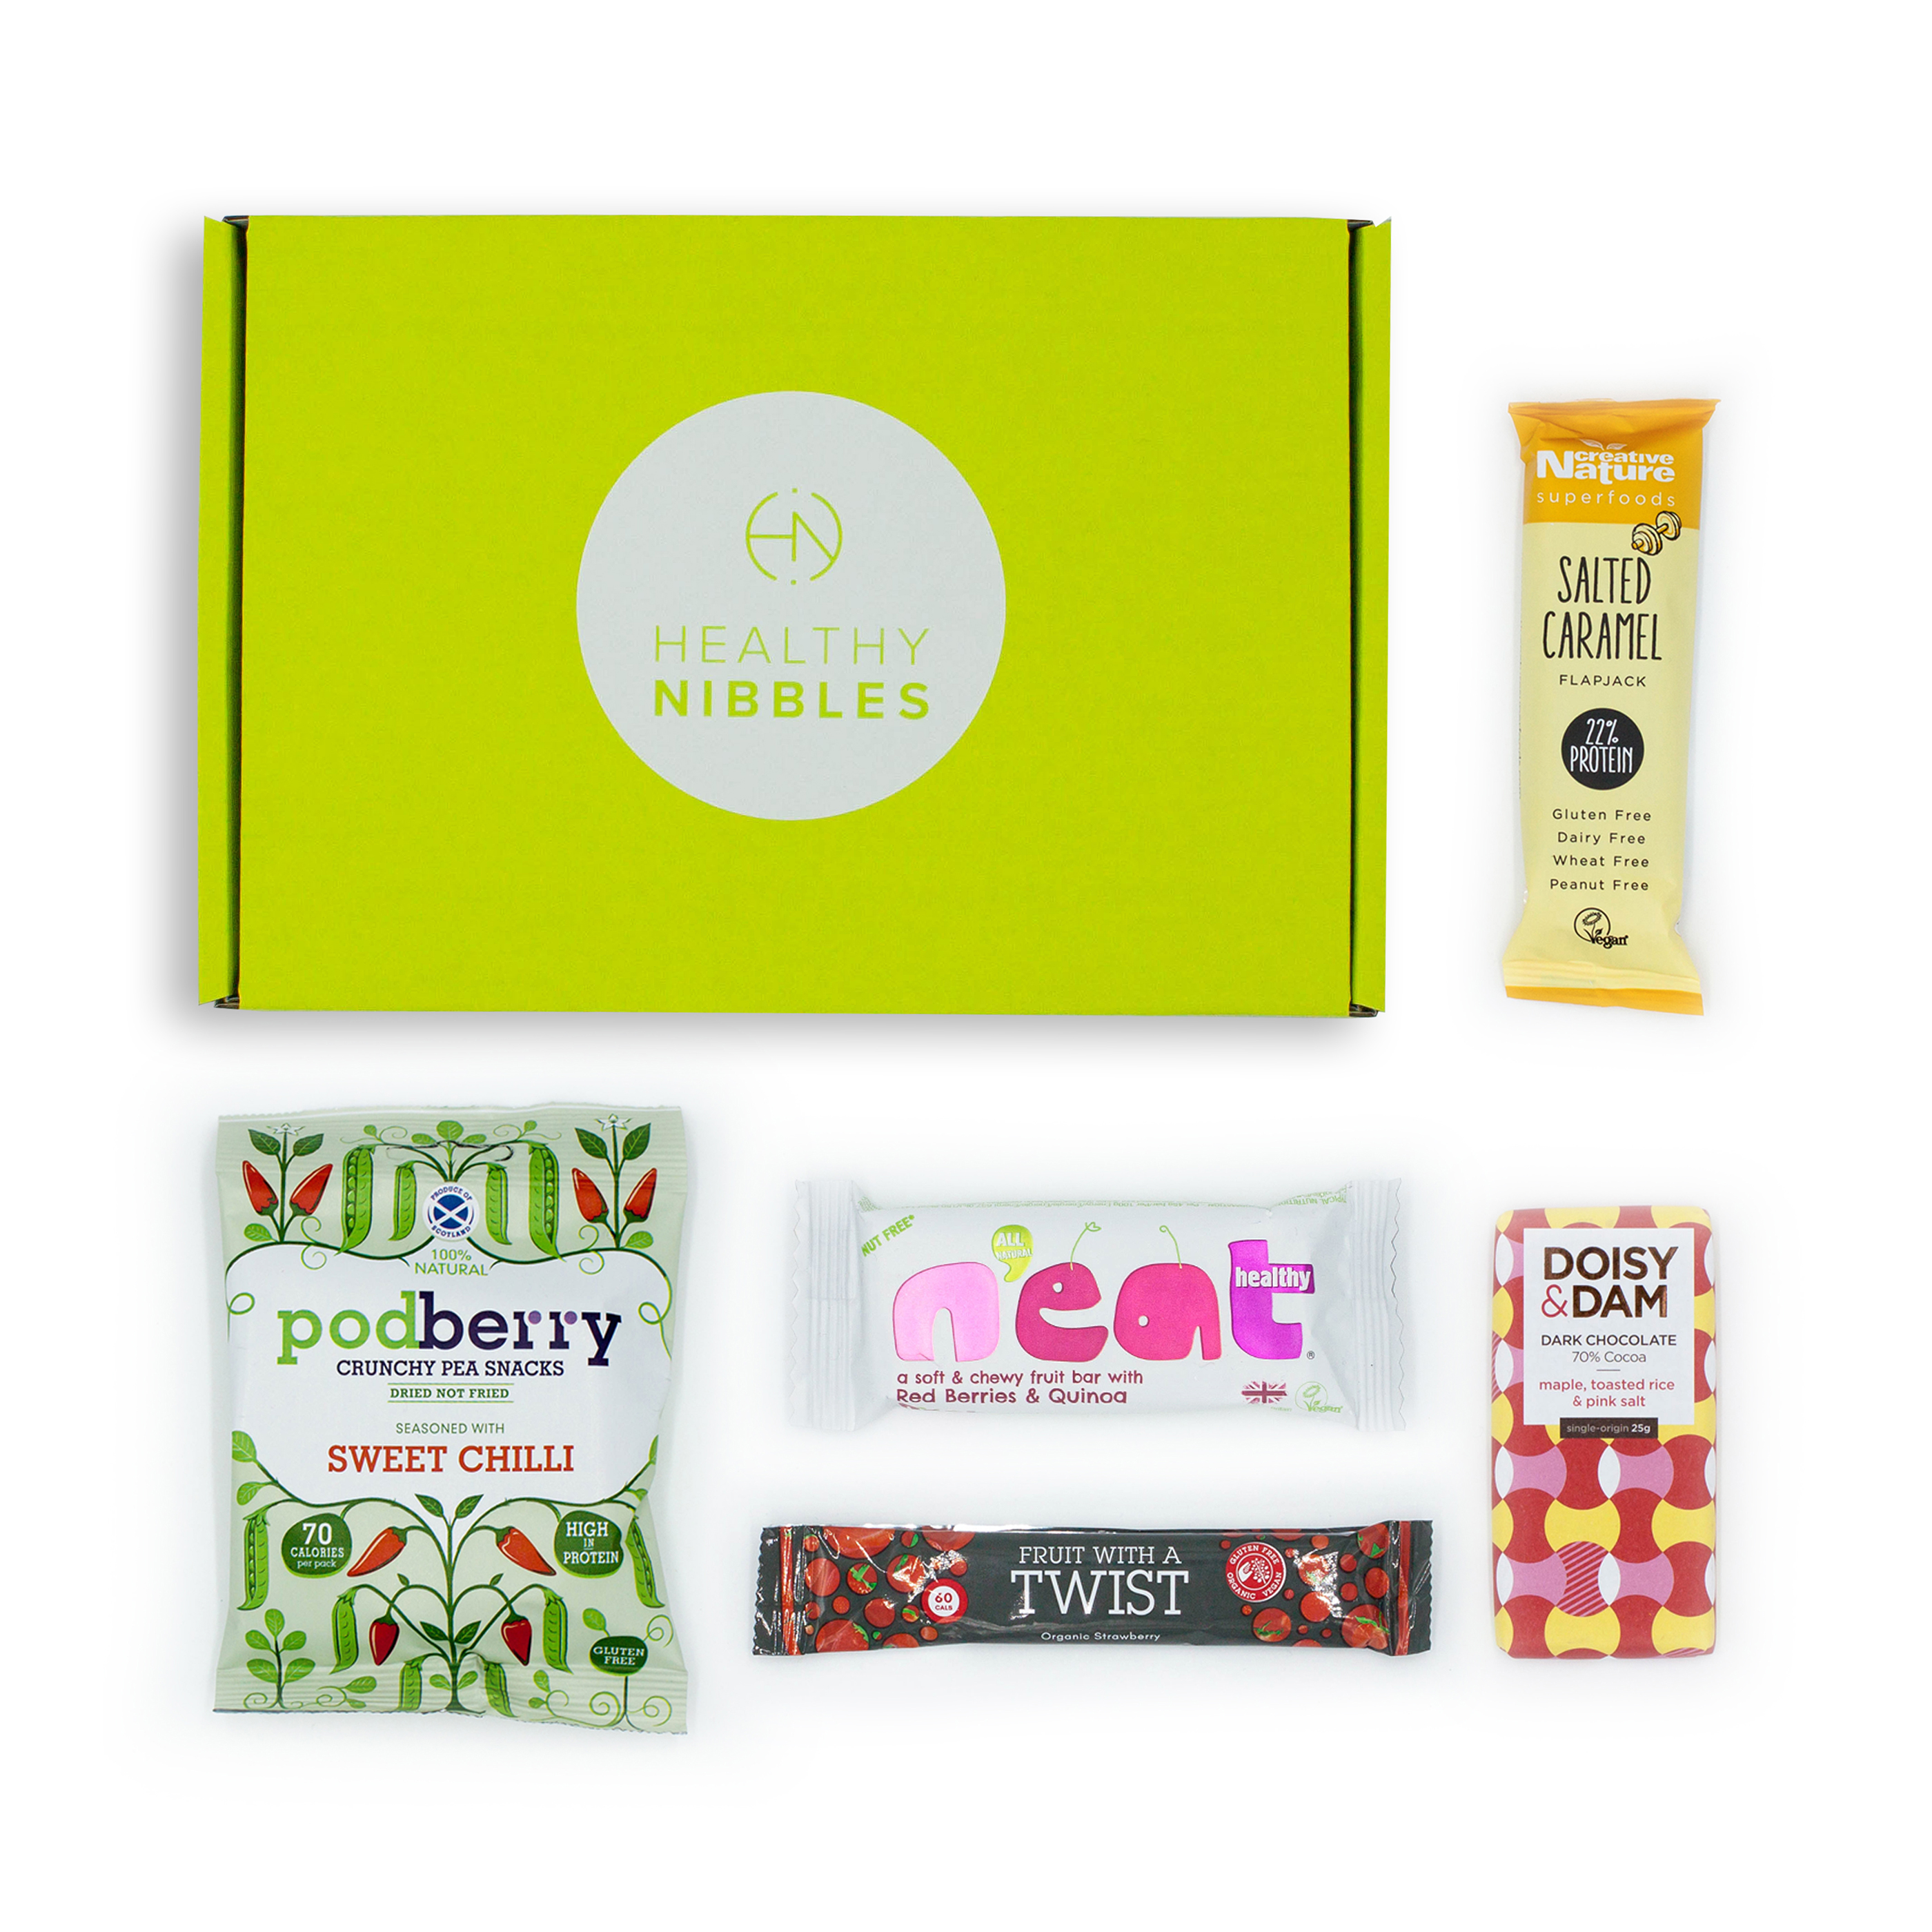 Natural sugars or sweetening products Healthy Nibbles Nut Free Snack 5 Piece Mini Box Ref NutFree5 *Up to 2-3 Day Leadtime*